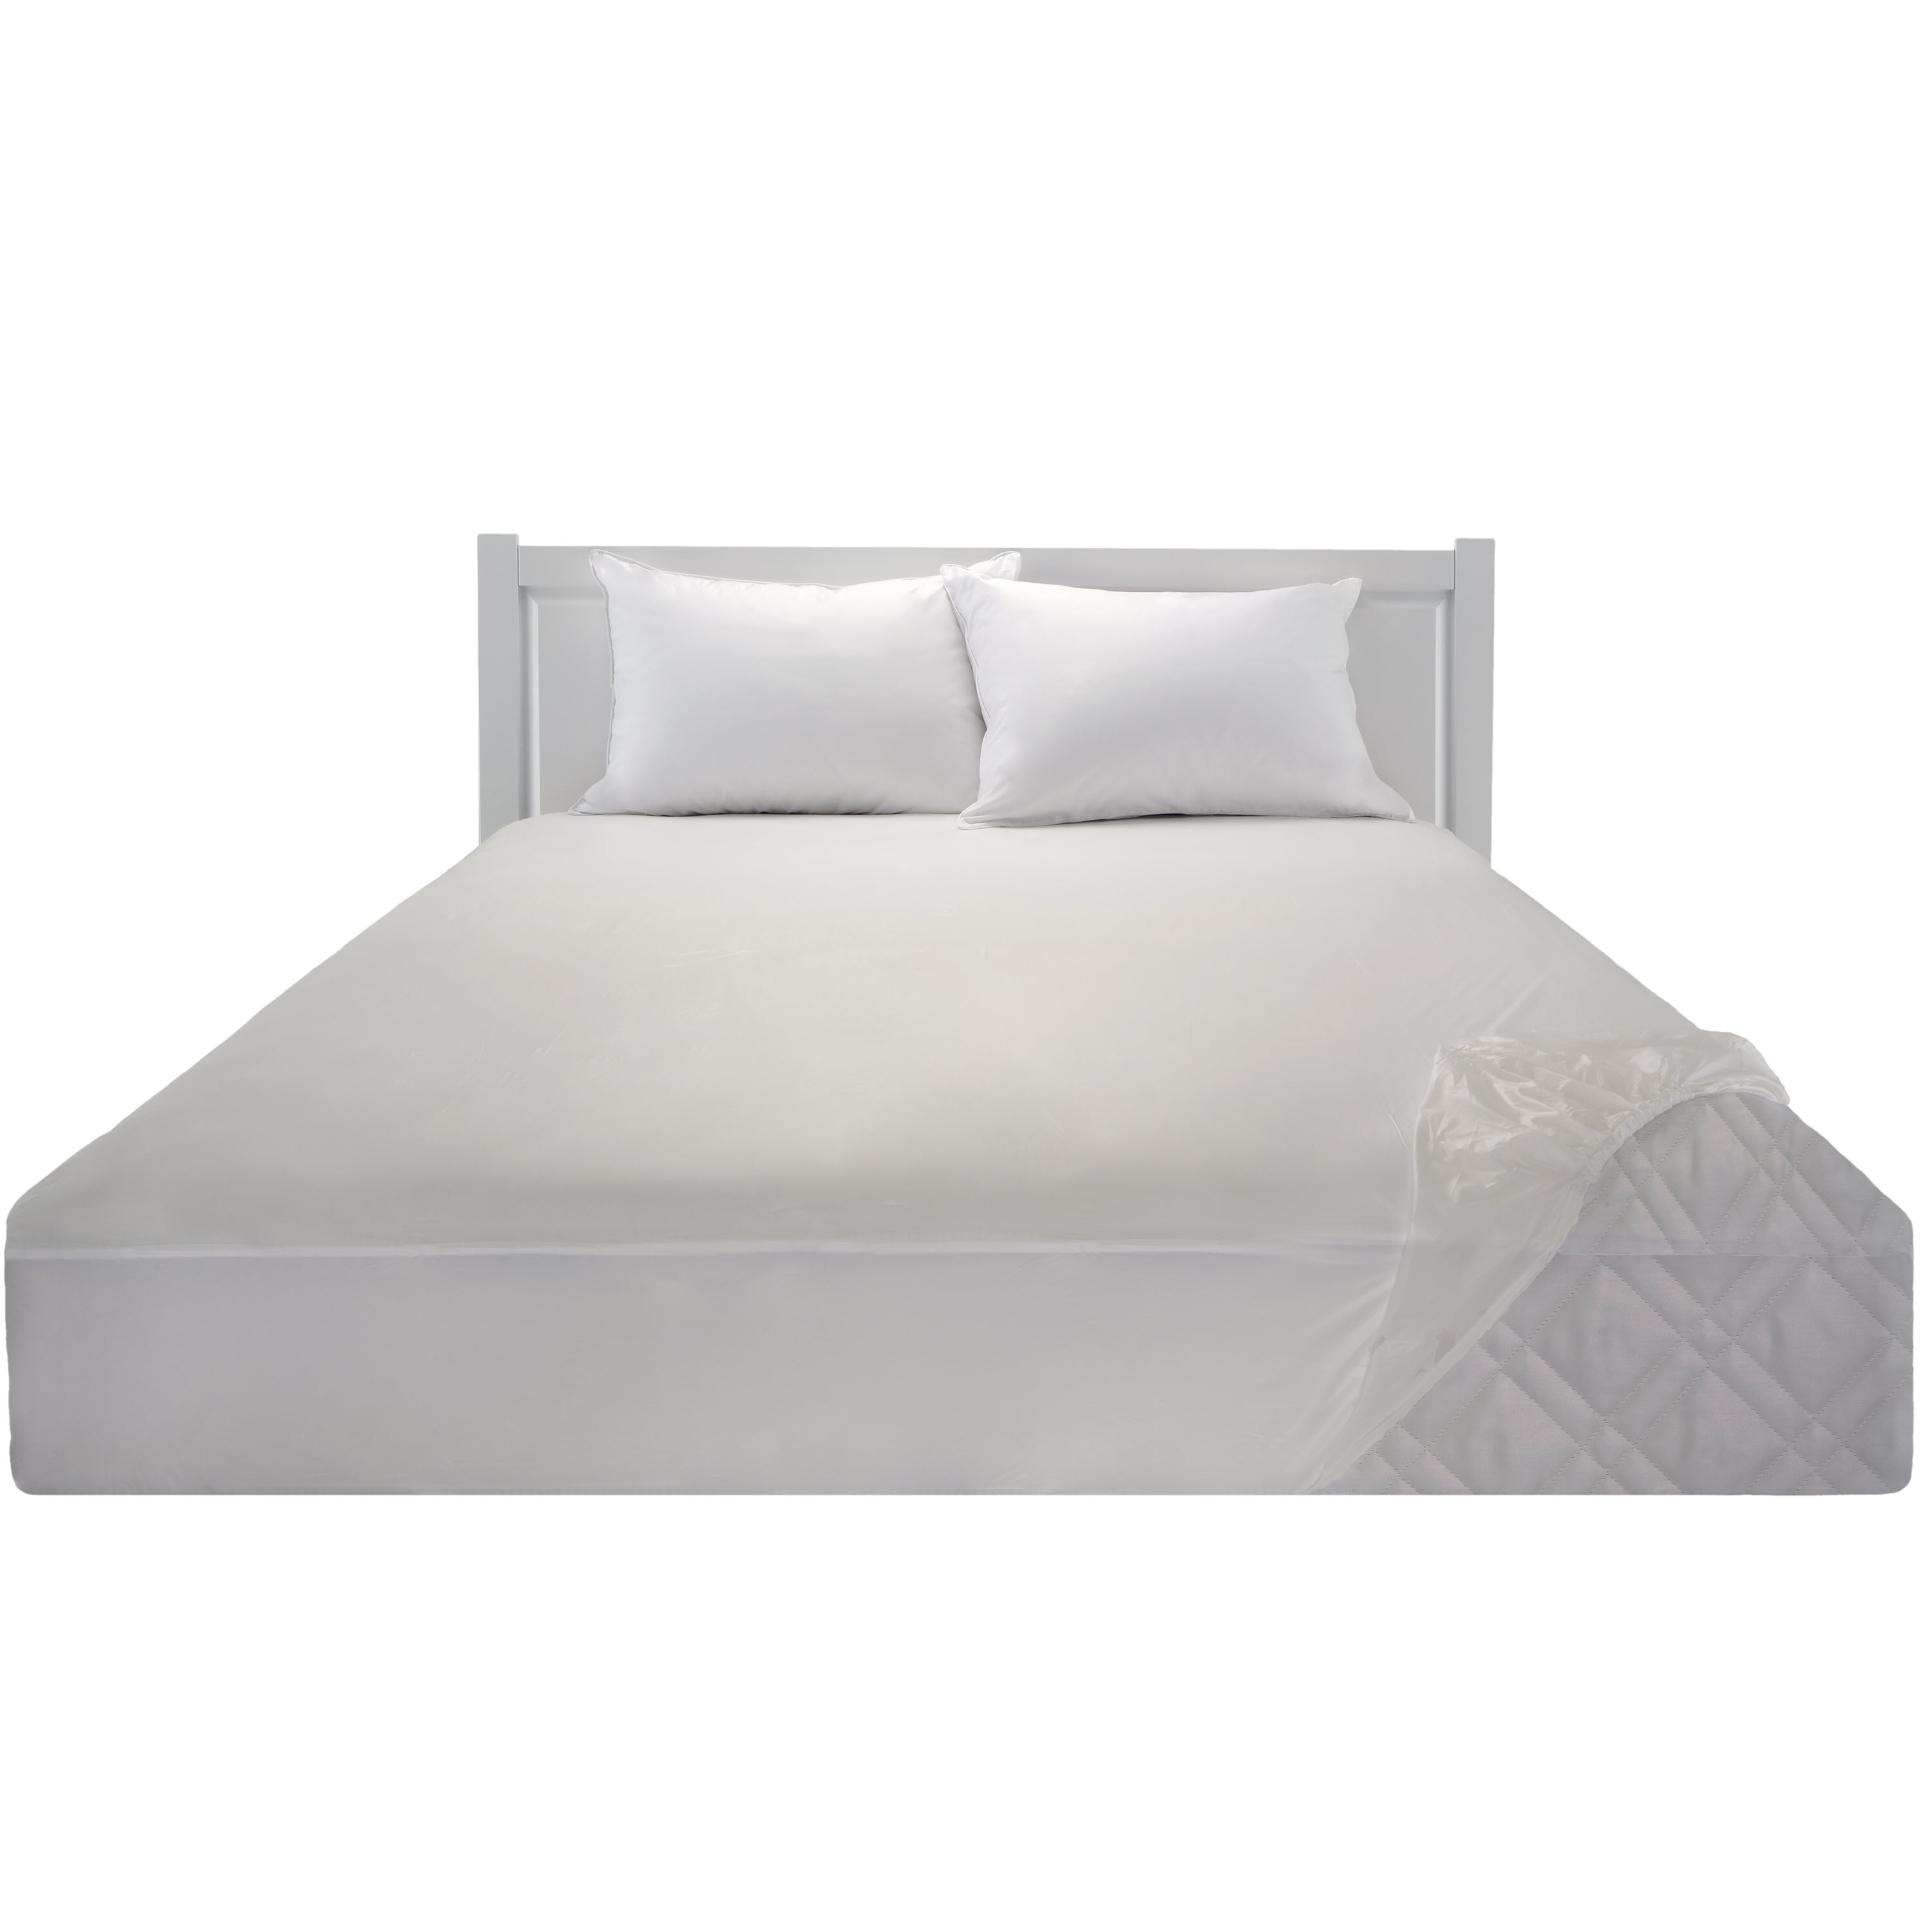 Mainstays Waterproof Fitted Vinyl Mattress Protector